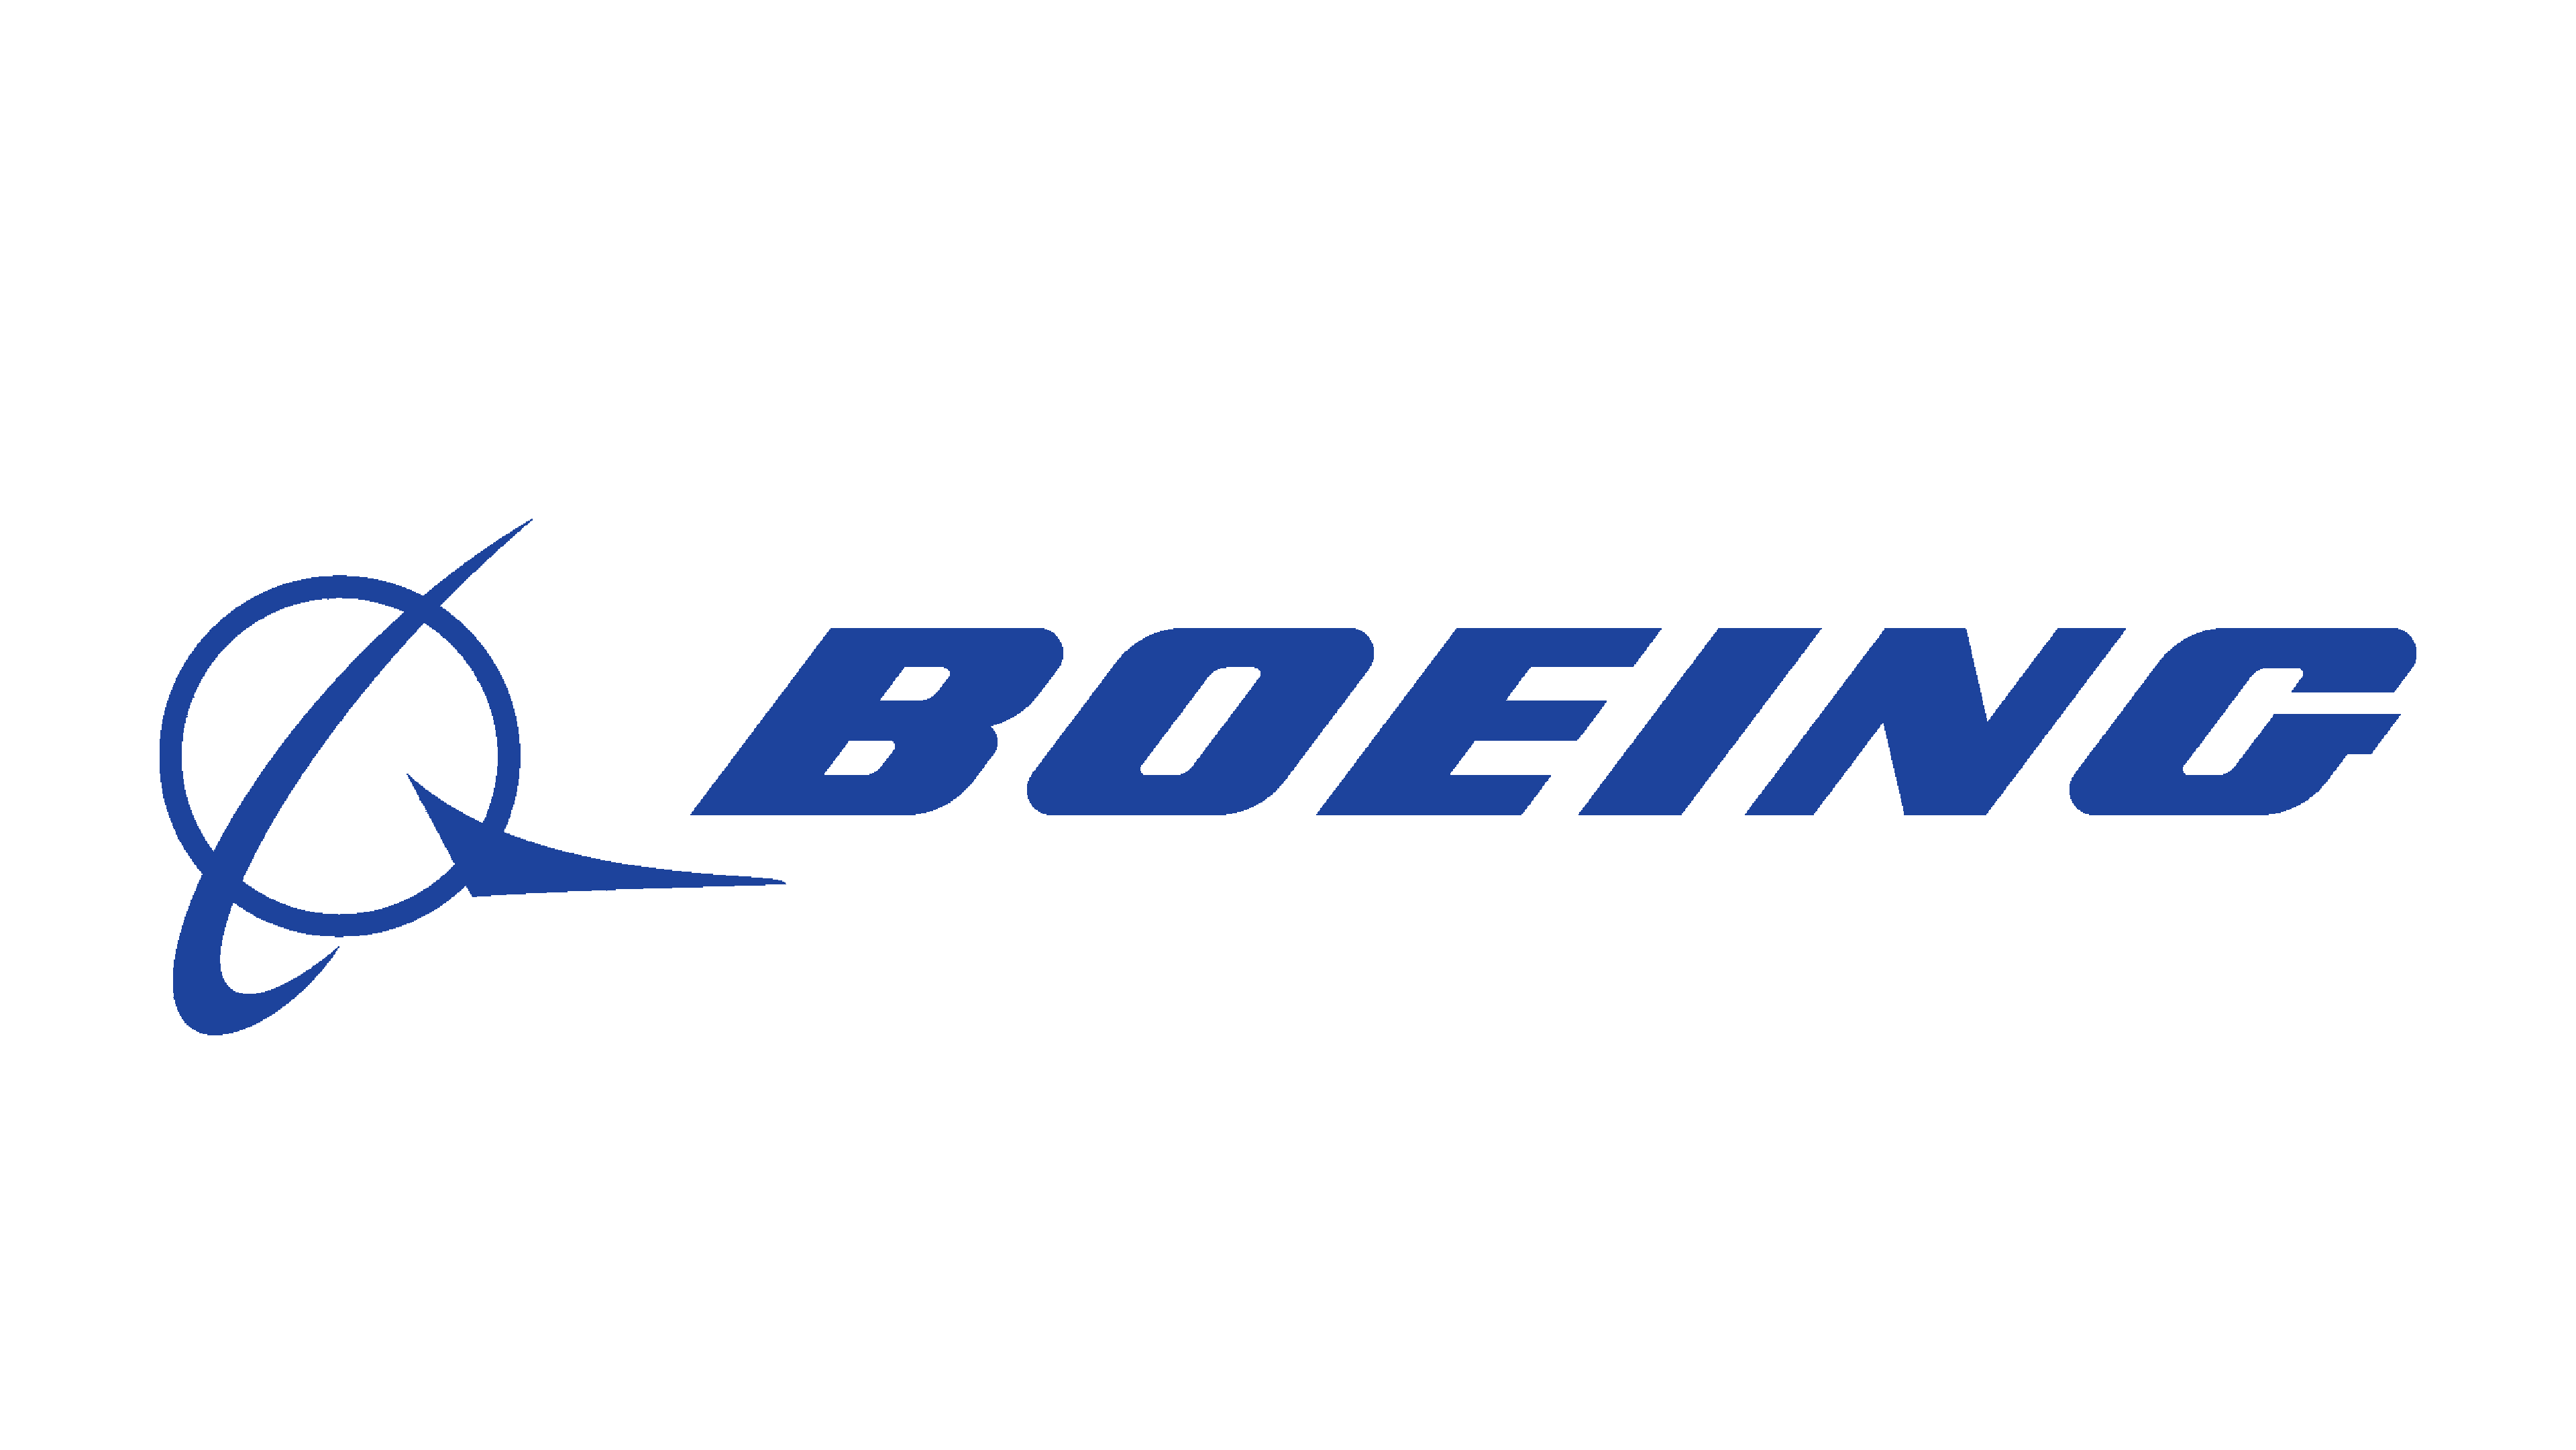 Boeing Helicopters Logo Logo